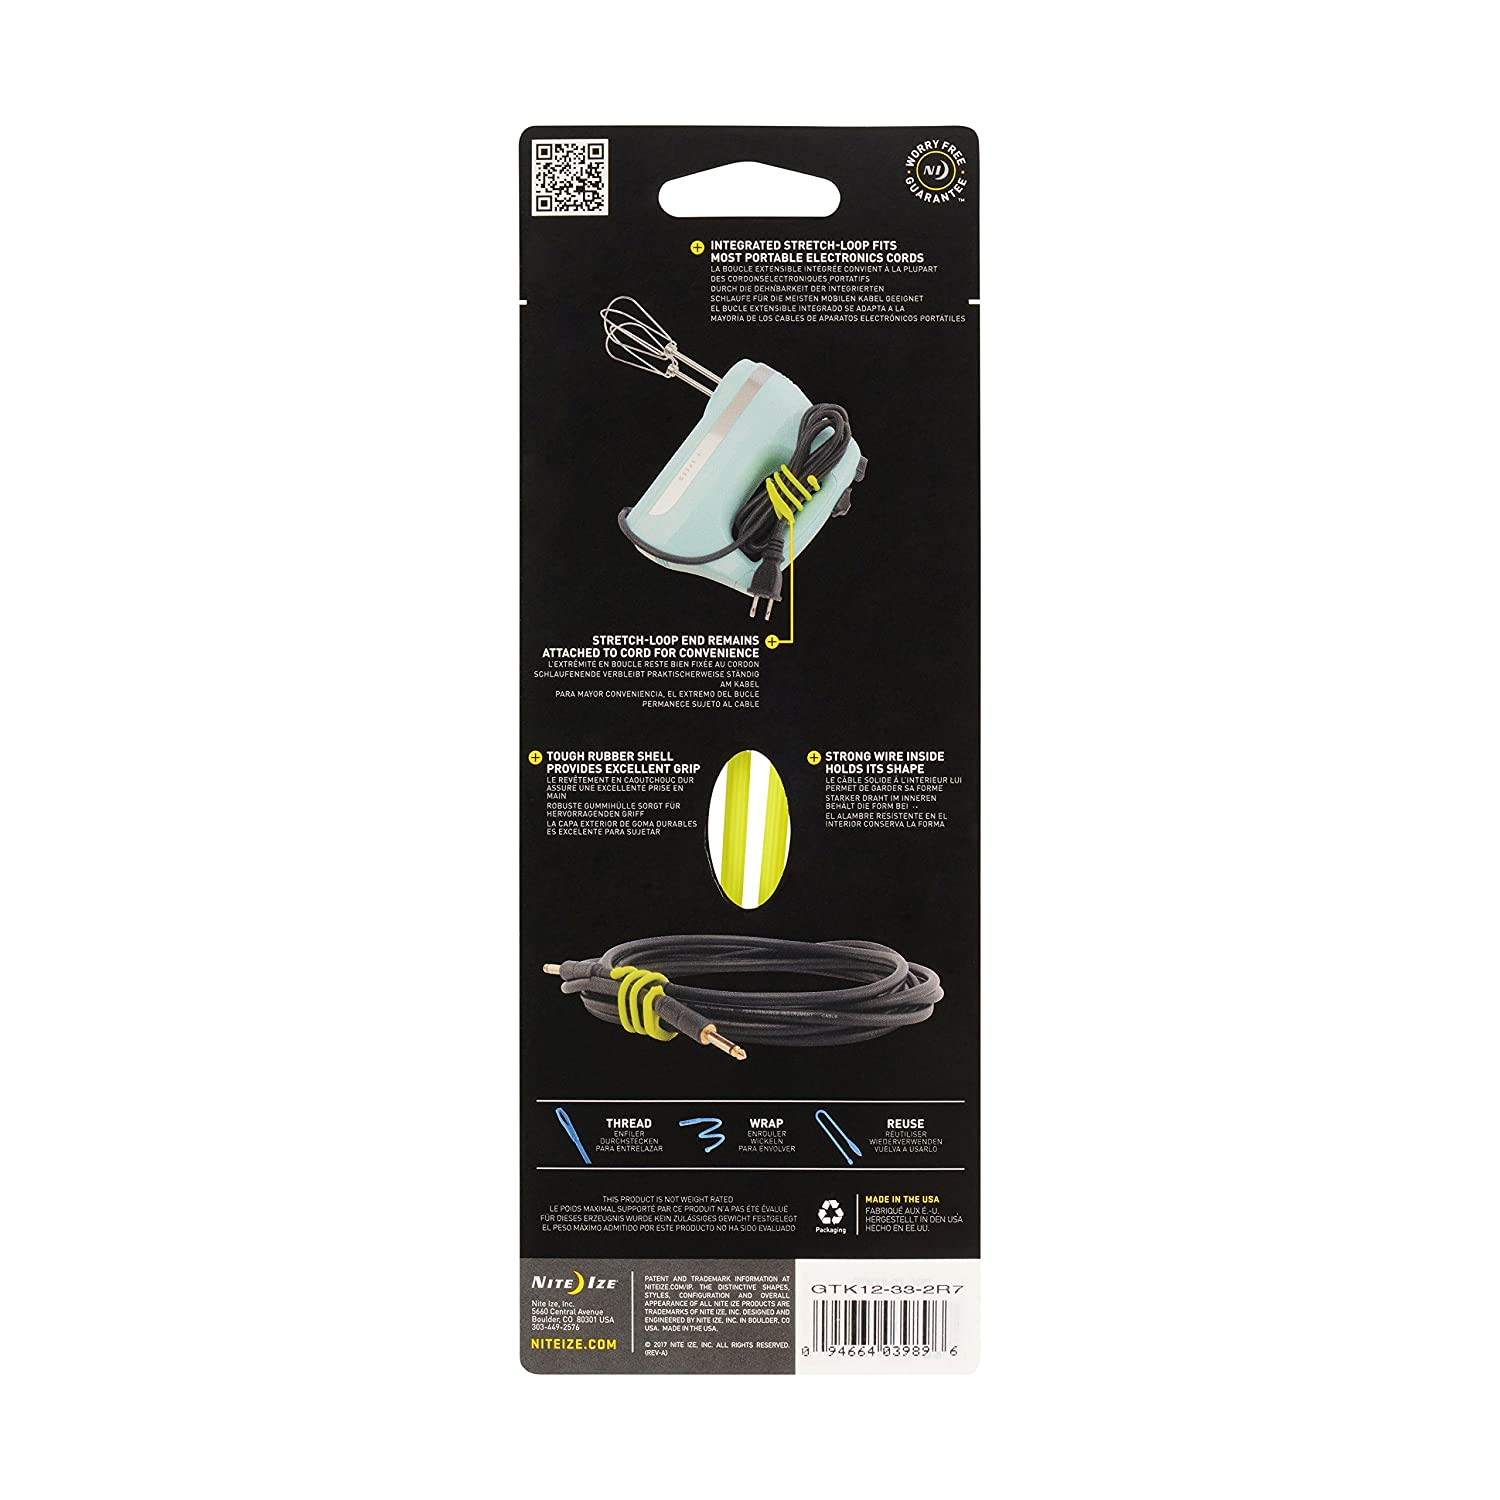 Amazon.com: Nite Ize Gear Tie Cordable, The Orginal Reusable Rubber Twist Tie with Stretch-Loop for Cord Management + Storage, 12-Inch, Neon Yellow, 2 Pack, ...